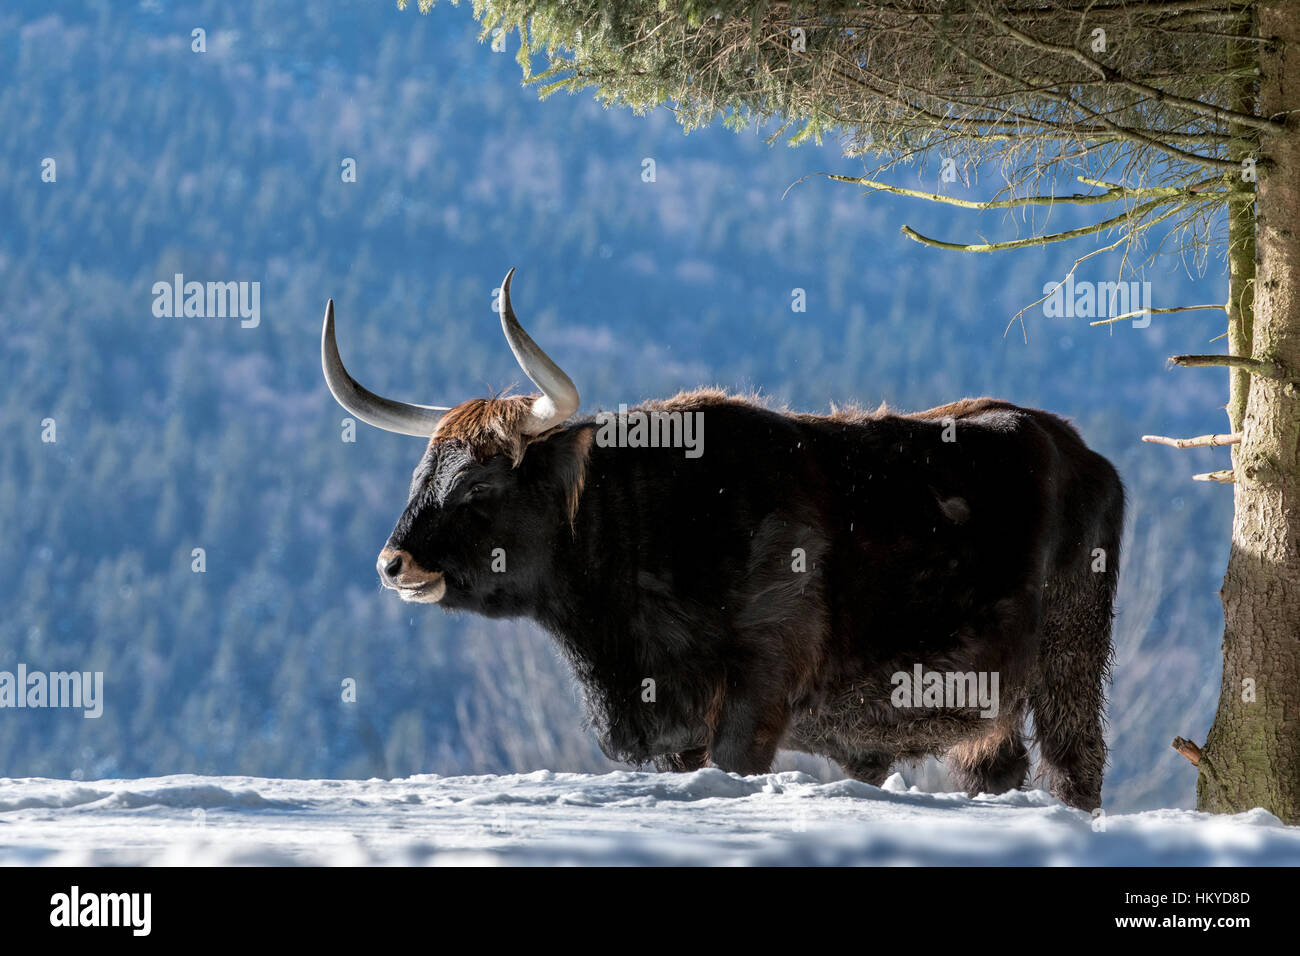 Heck cattle (Bos domesticus) bull under tree in the snow in winter. Attempt to breed back the extinct aurochs (Bos - Stock Image